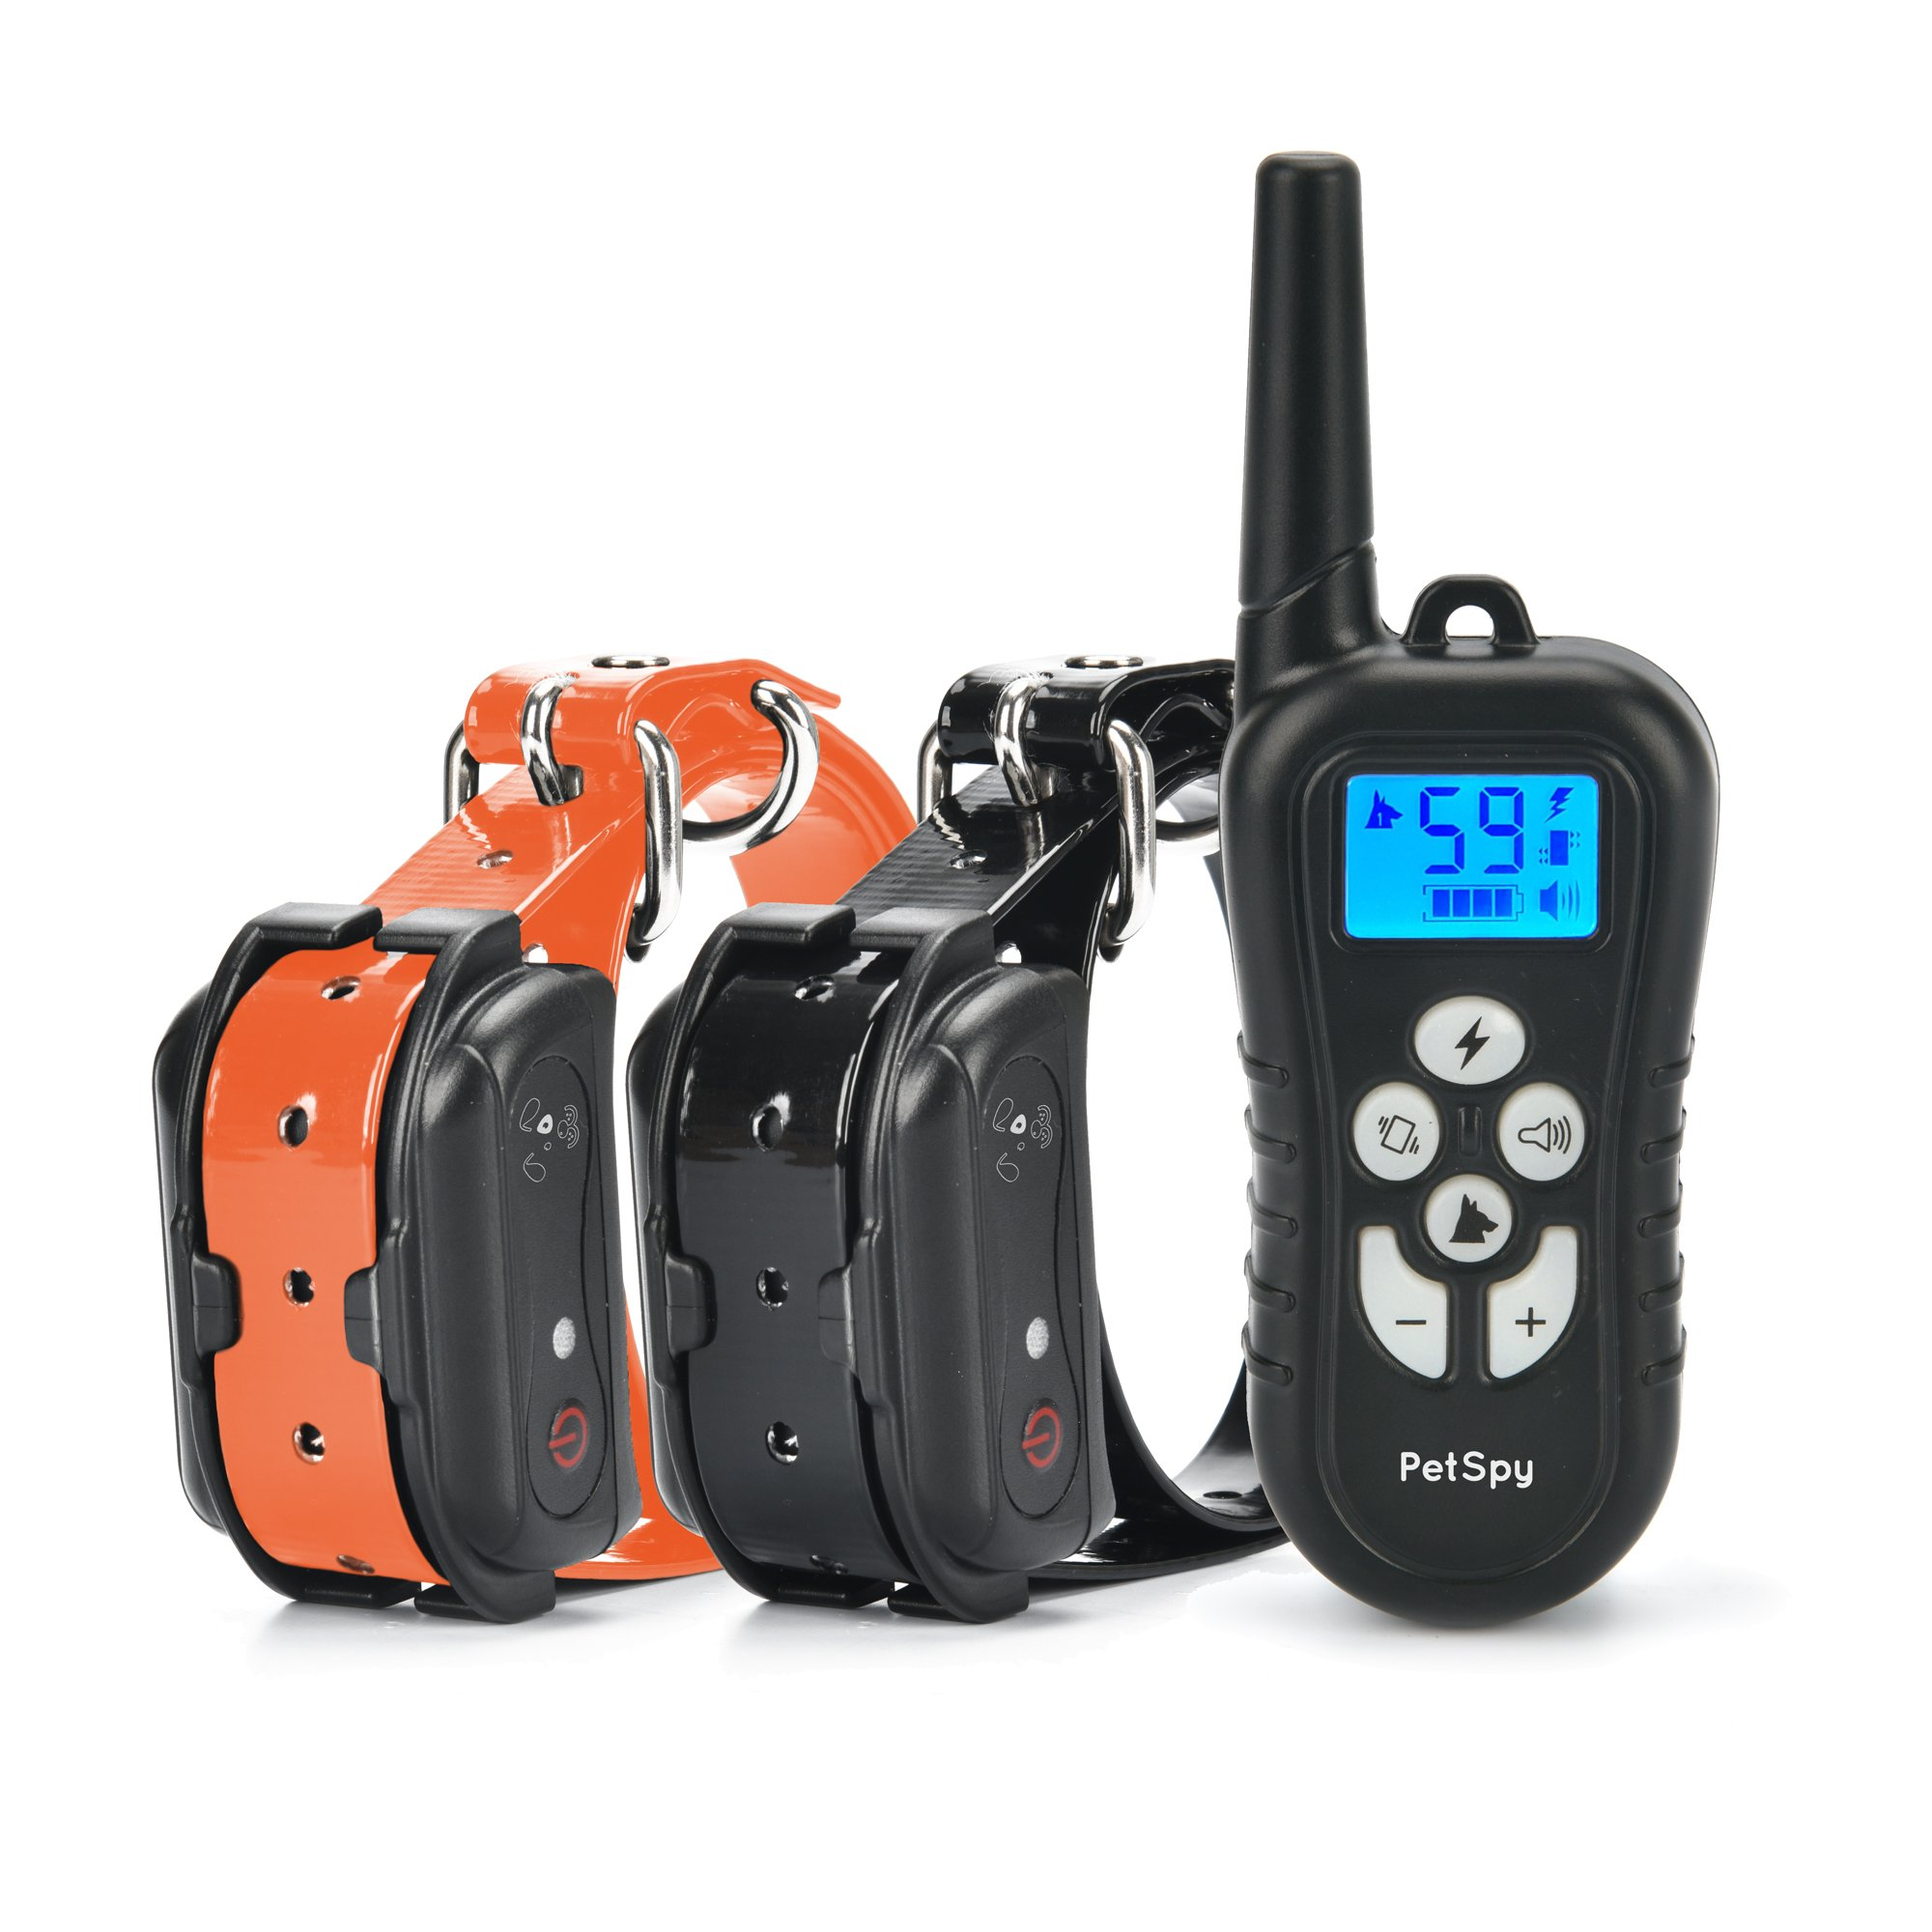 PetSpy Dual Dog Training Shock Collar for 2 Dogs with Beep, Vibration and Electric Shocking, Rechargeable and Waterproof E-Collar Remote Trainer by PetSpy